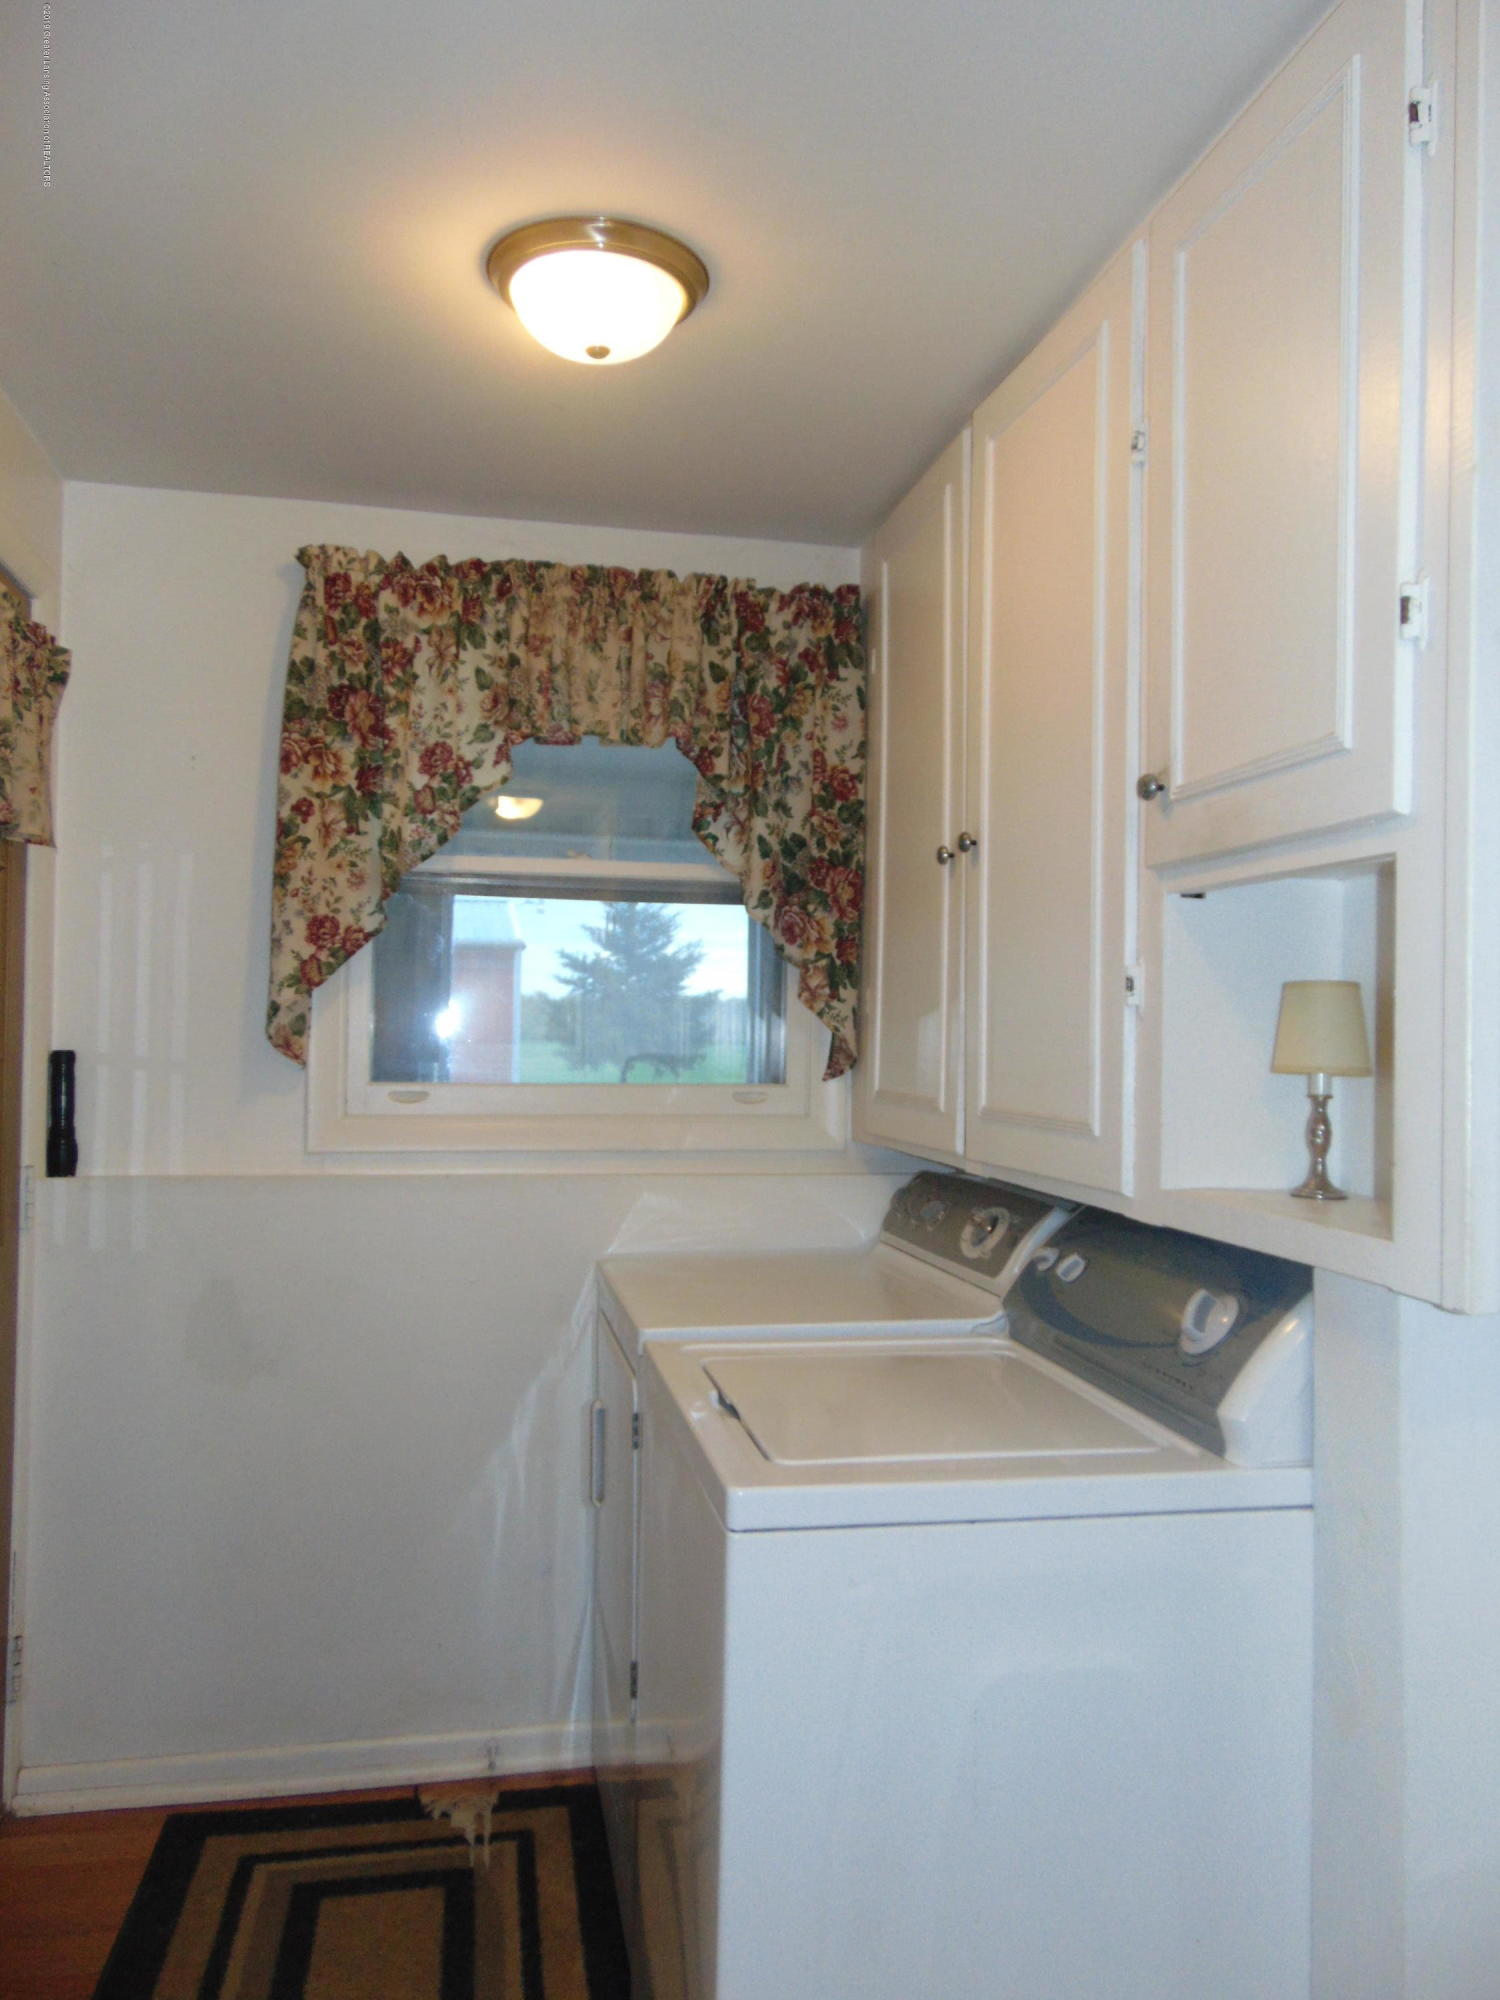 275 S Chester Rd - laundry room - 11